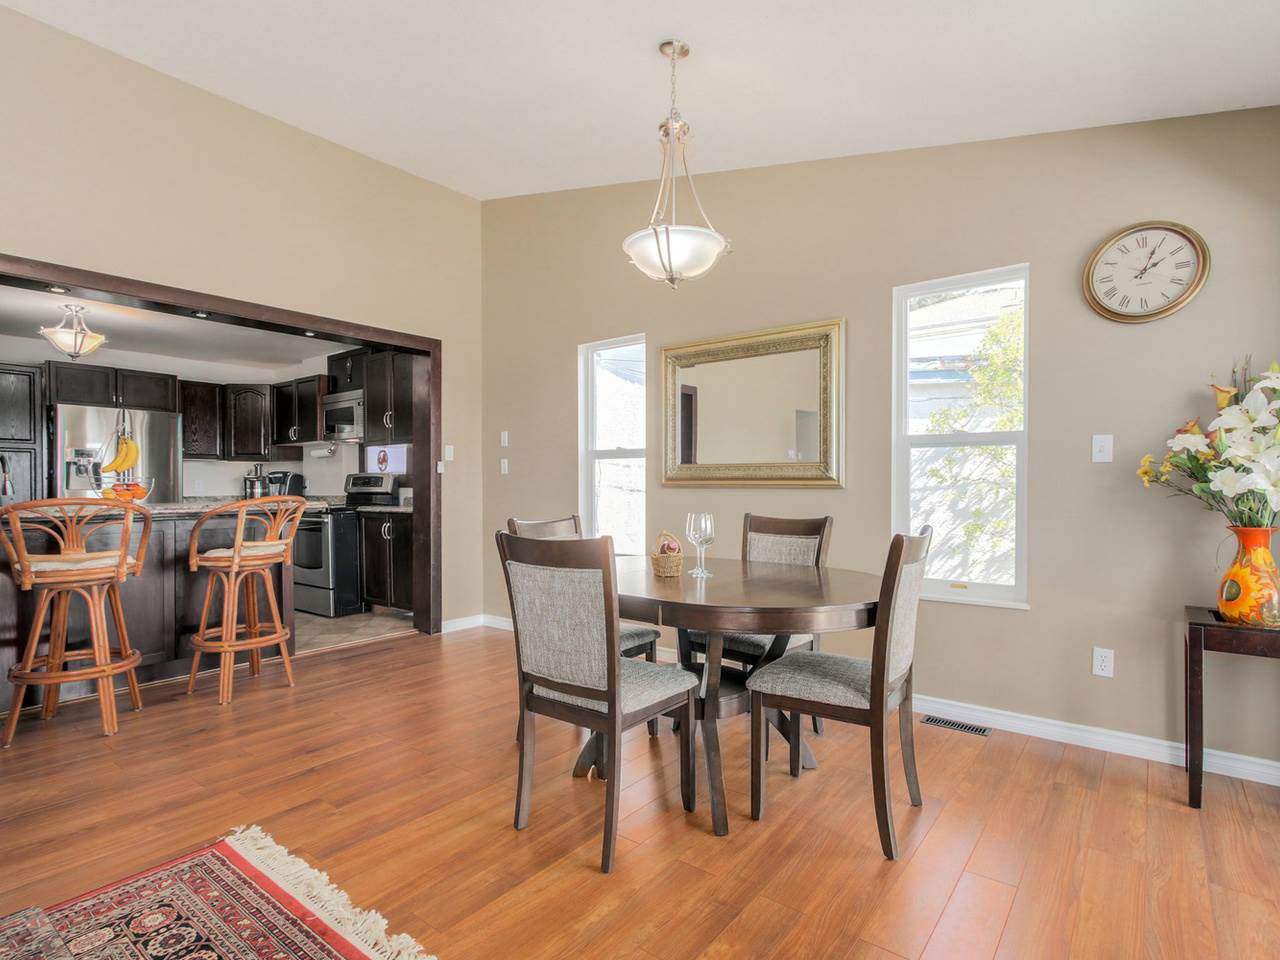 Photo 6: Photos: 449 E 5TH Street in North Vancouver: Lower Lonsdale House for sale : MLS®# R2056647